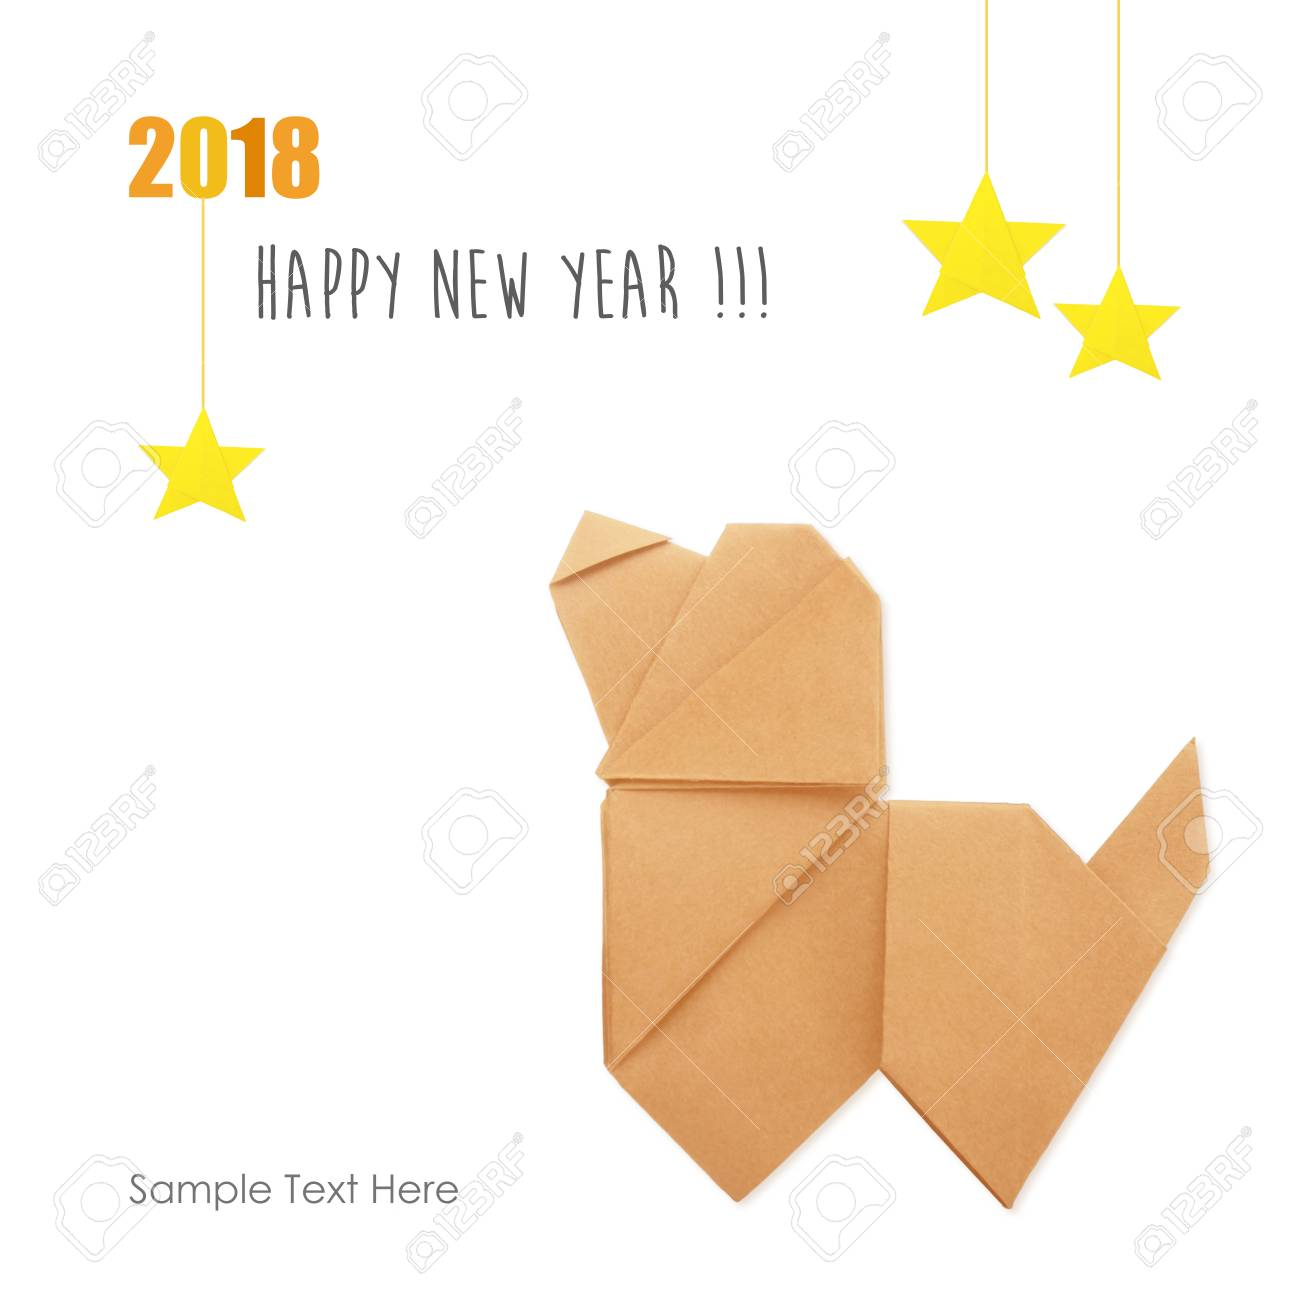 Origami Dog Simbol Of Chinese 2018 New Year And Stars On A White Background Stock Photo